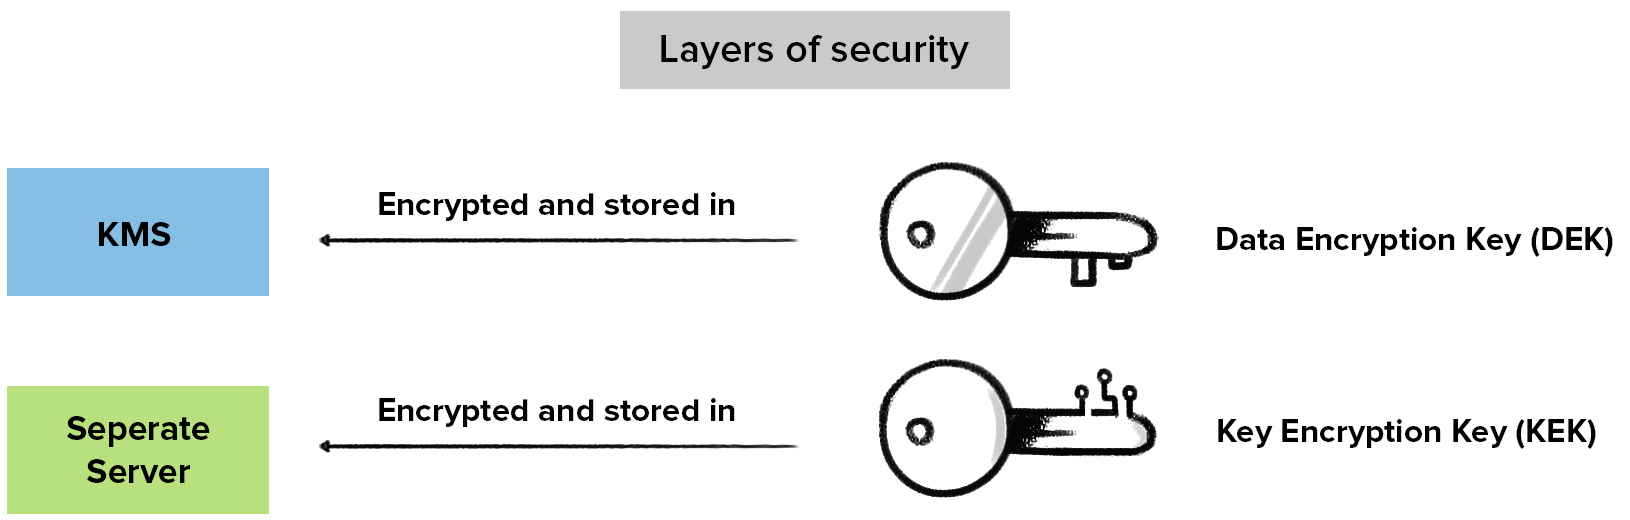 layers-security